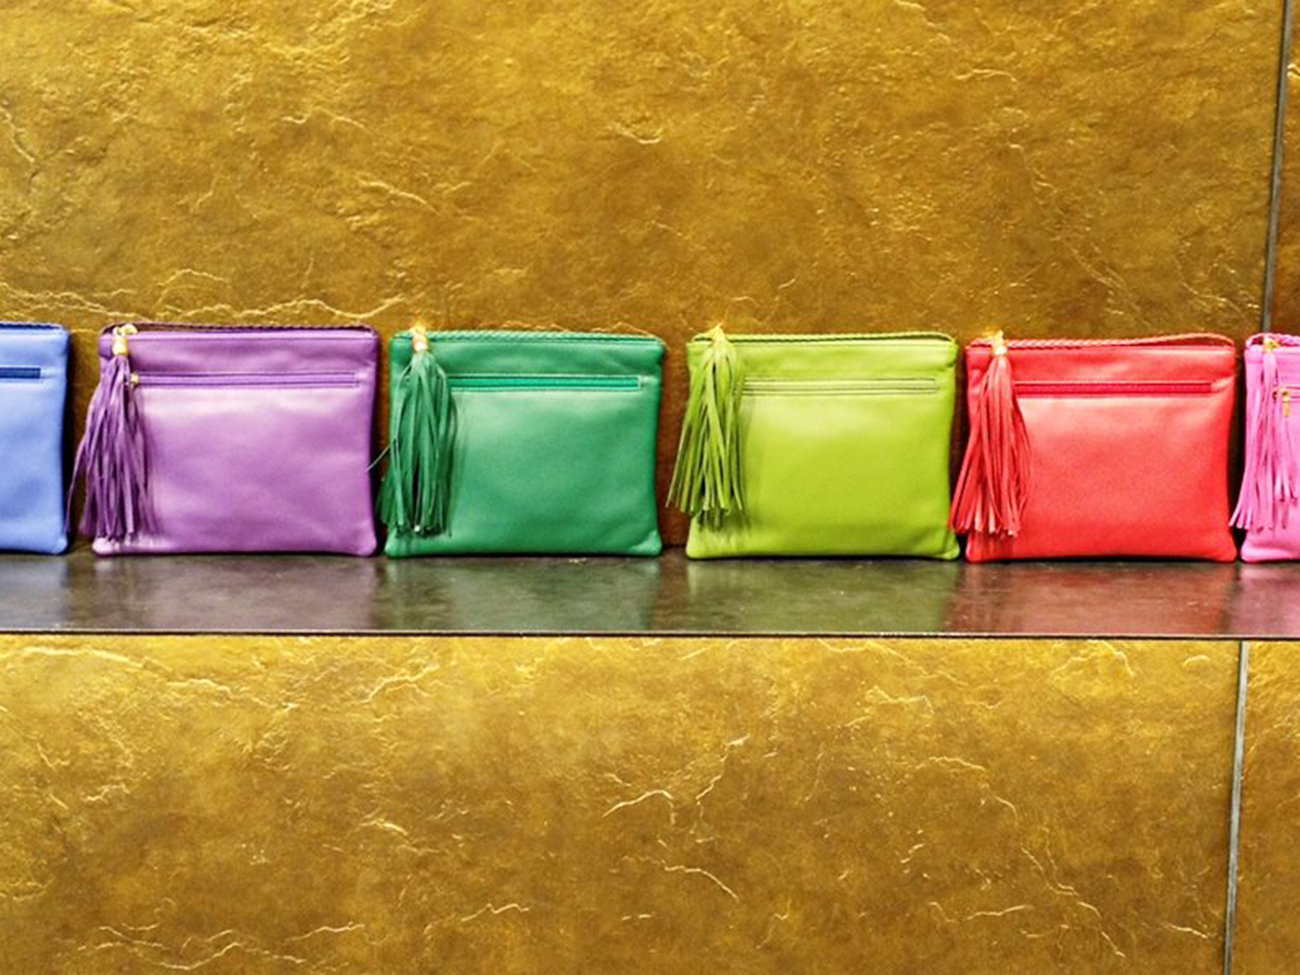 Sirni Leather Goods Shop in Rome